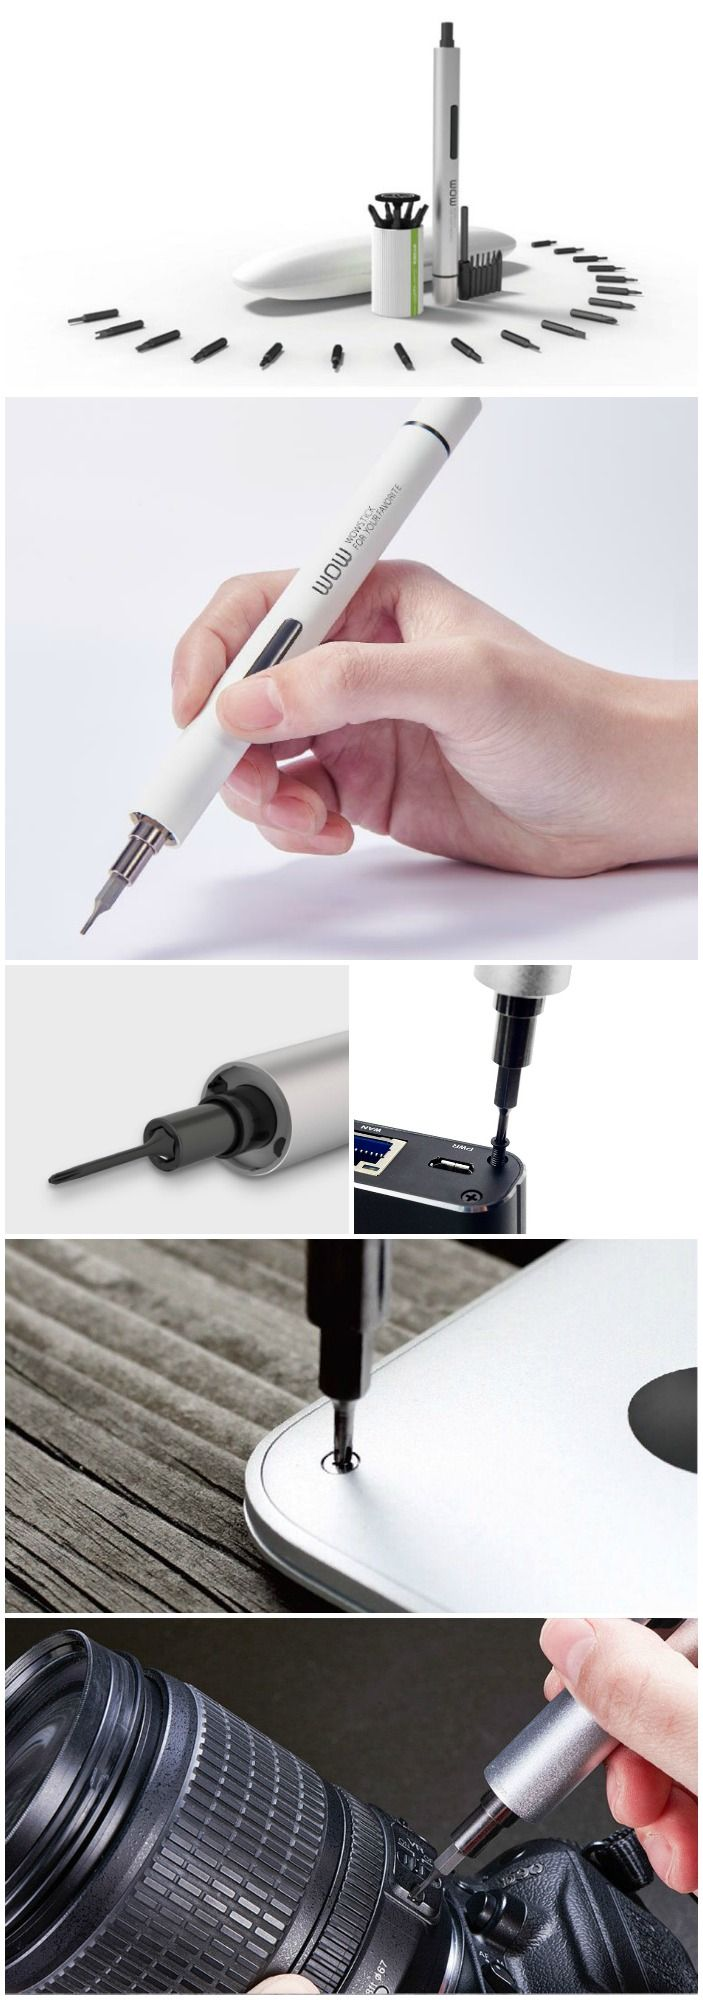 The Wowstick is the first-of-its-kind portable cordless precision screwdriver perfect for home appliances, electronics as well as hobbies and crafts.